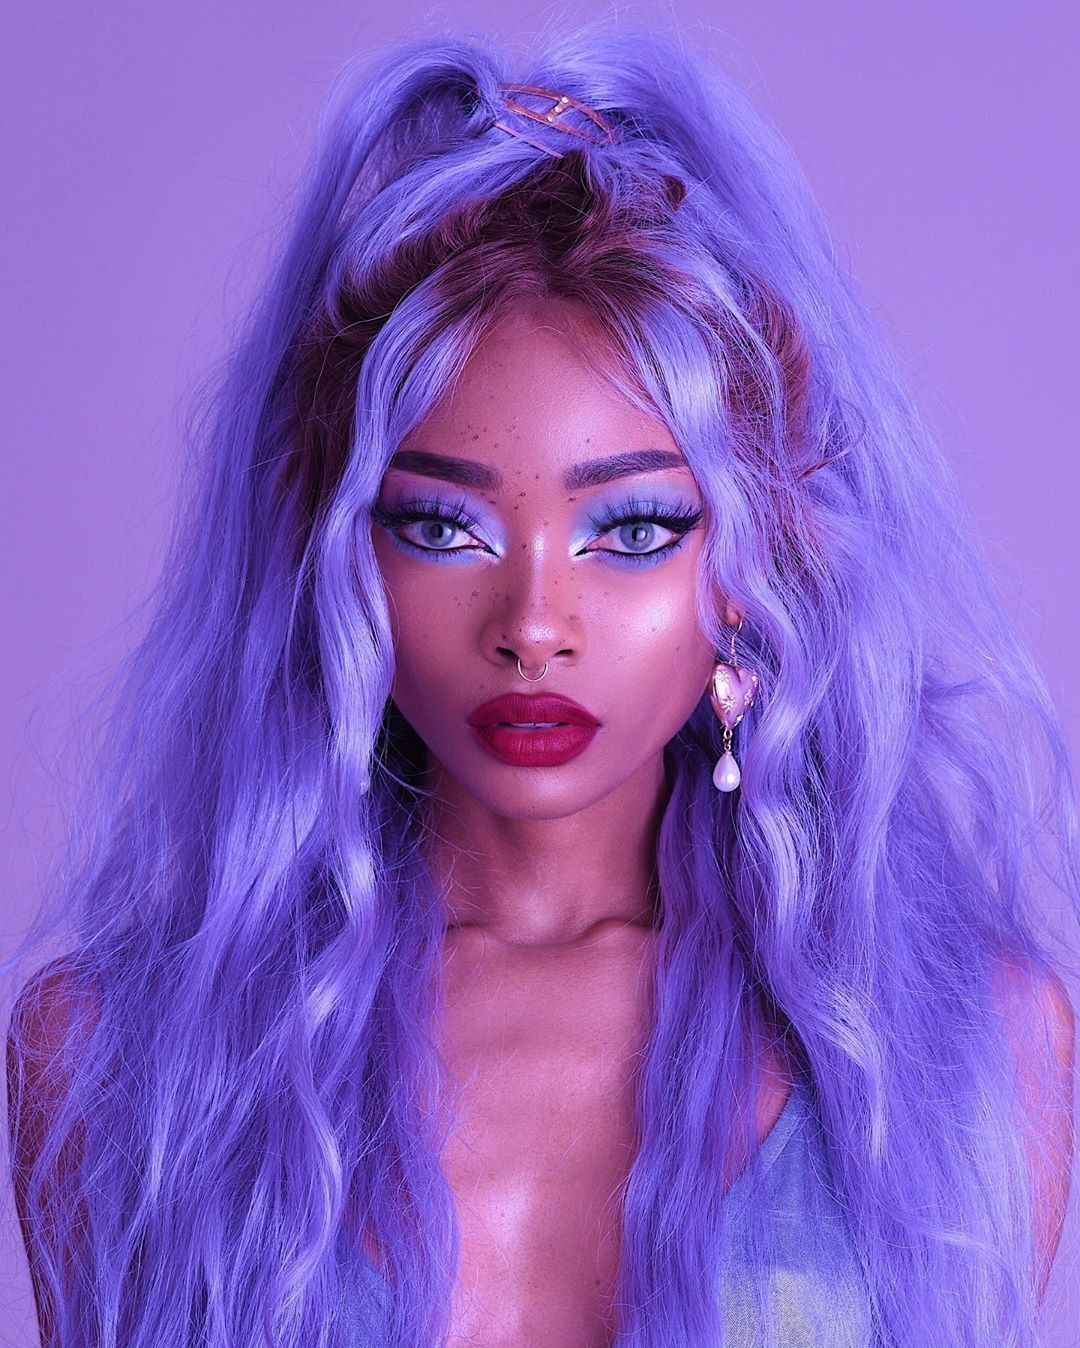 Pin By Currise On Cute Wigs In 2020 Purple Hair Black Girl Girl With Purple Hair Purple Hair